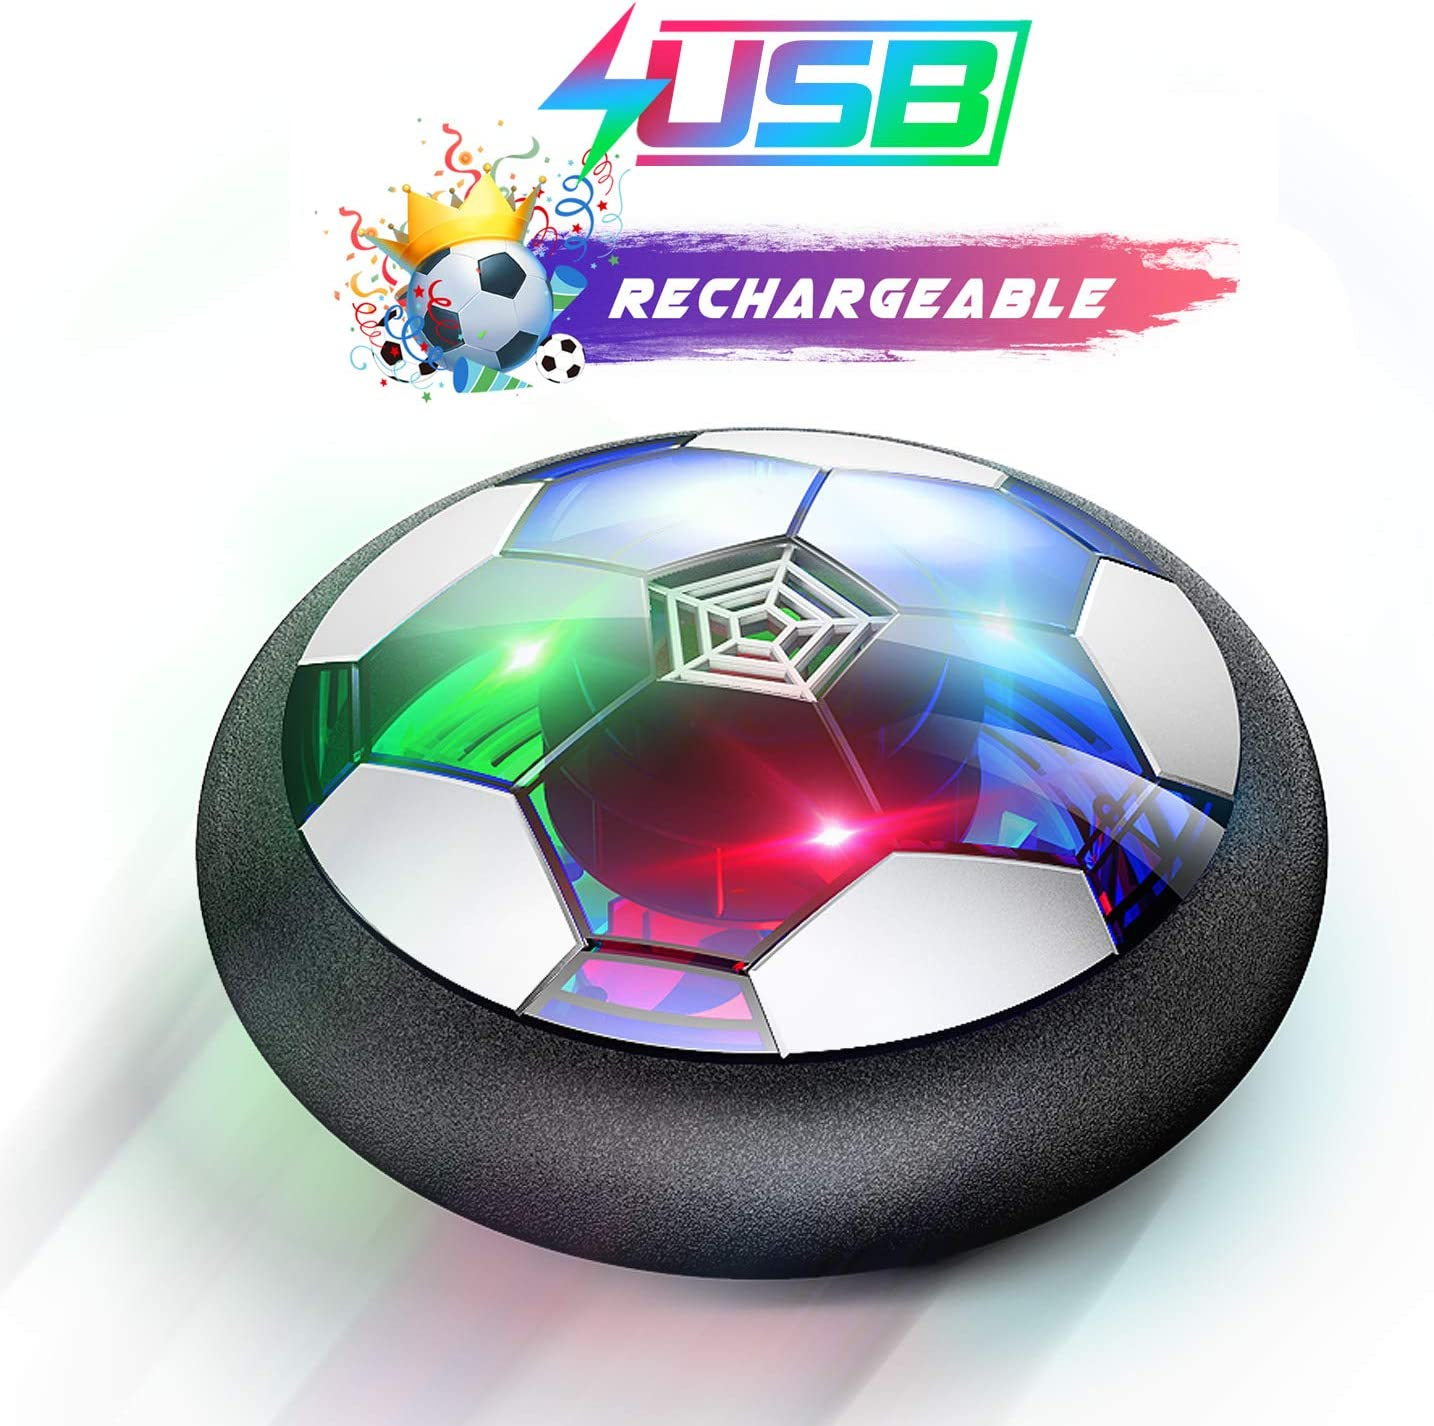 WisToyz Kids Toys Hover Soccer Ball Rechargeable Air Soccer, Soccer Ball Indoor Floating Soccer with LED Light and Foam Bumper, Perfect Time Killer for Boys, Girls, Toddler (No AA Batteries Needed): Toys & Games